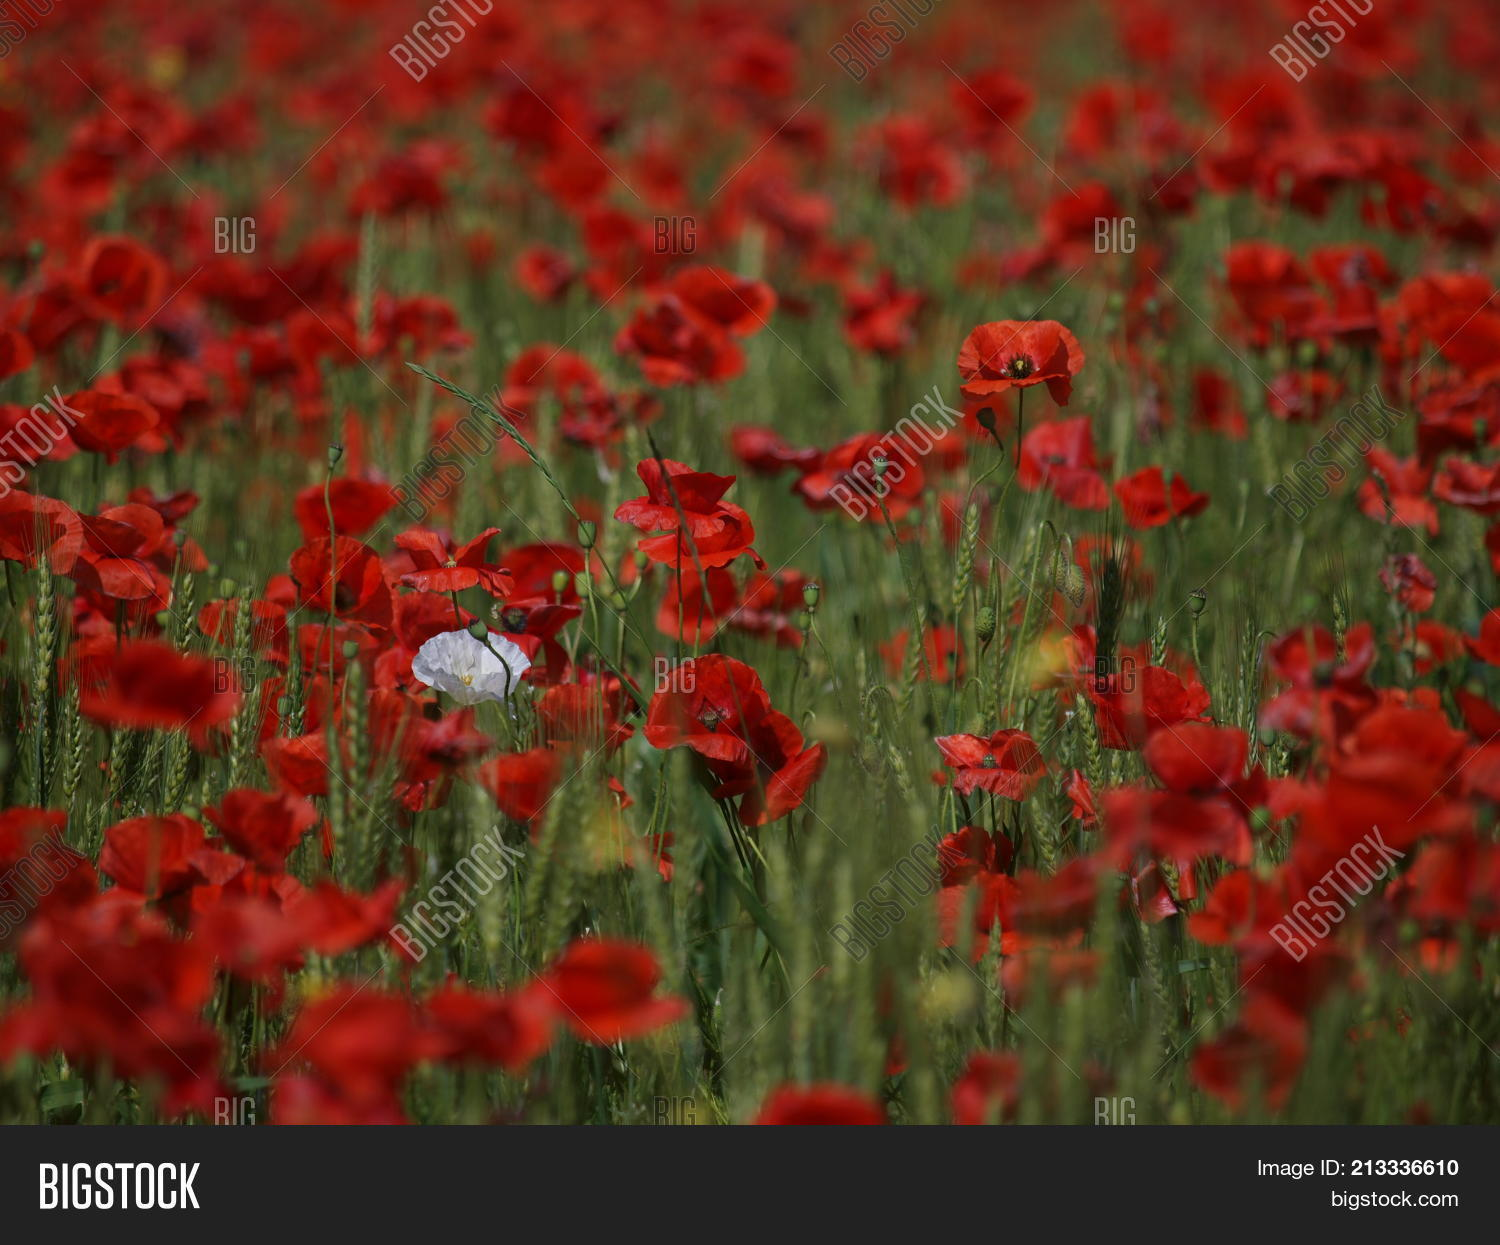 Poppy flowers growing image photo free trial bigstock poppy flowers are growing on a wheat field they add red tones to the green mightylinksfo